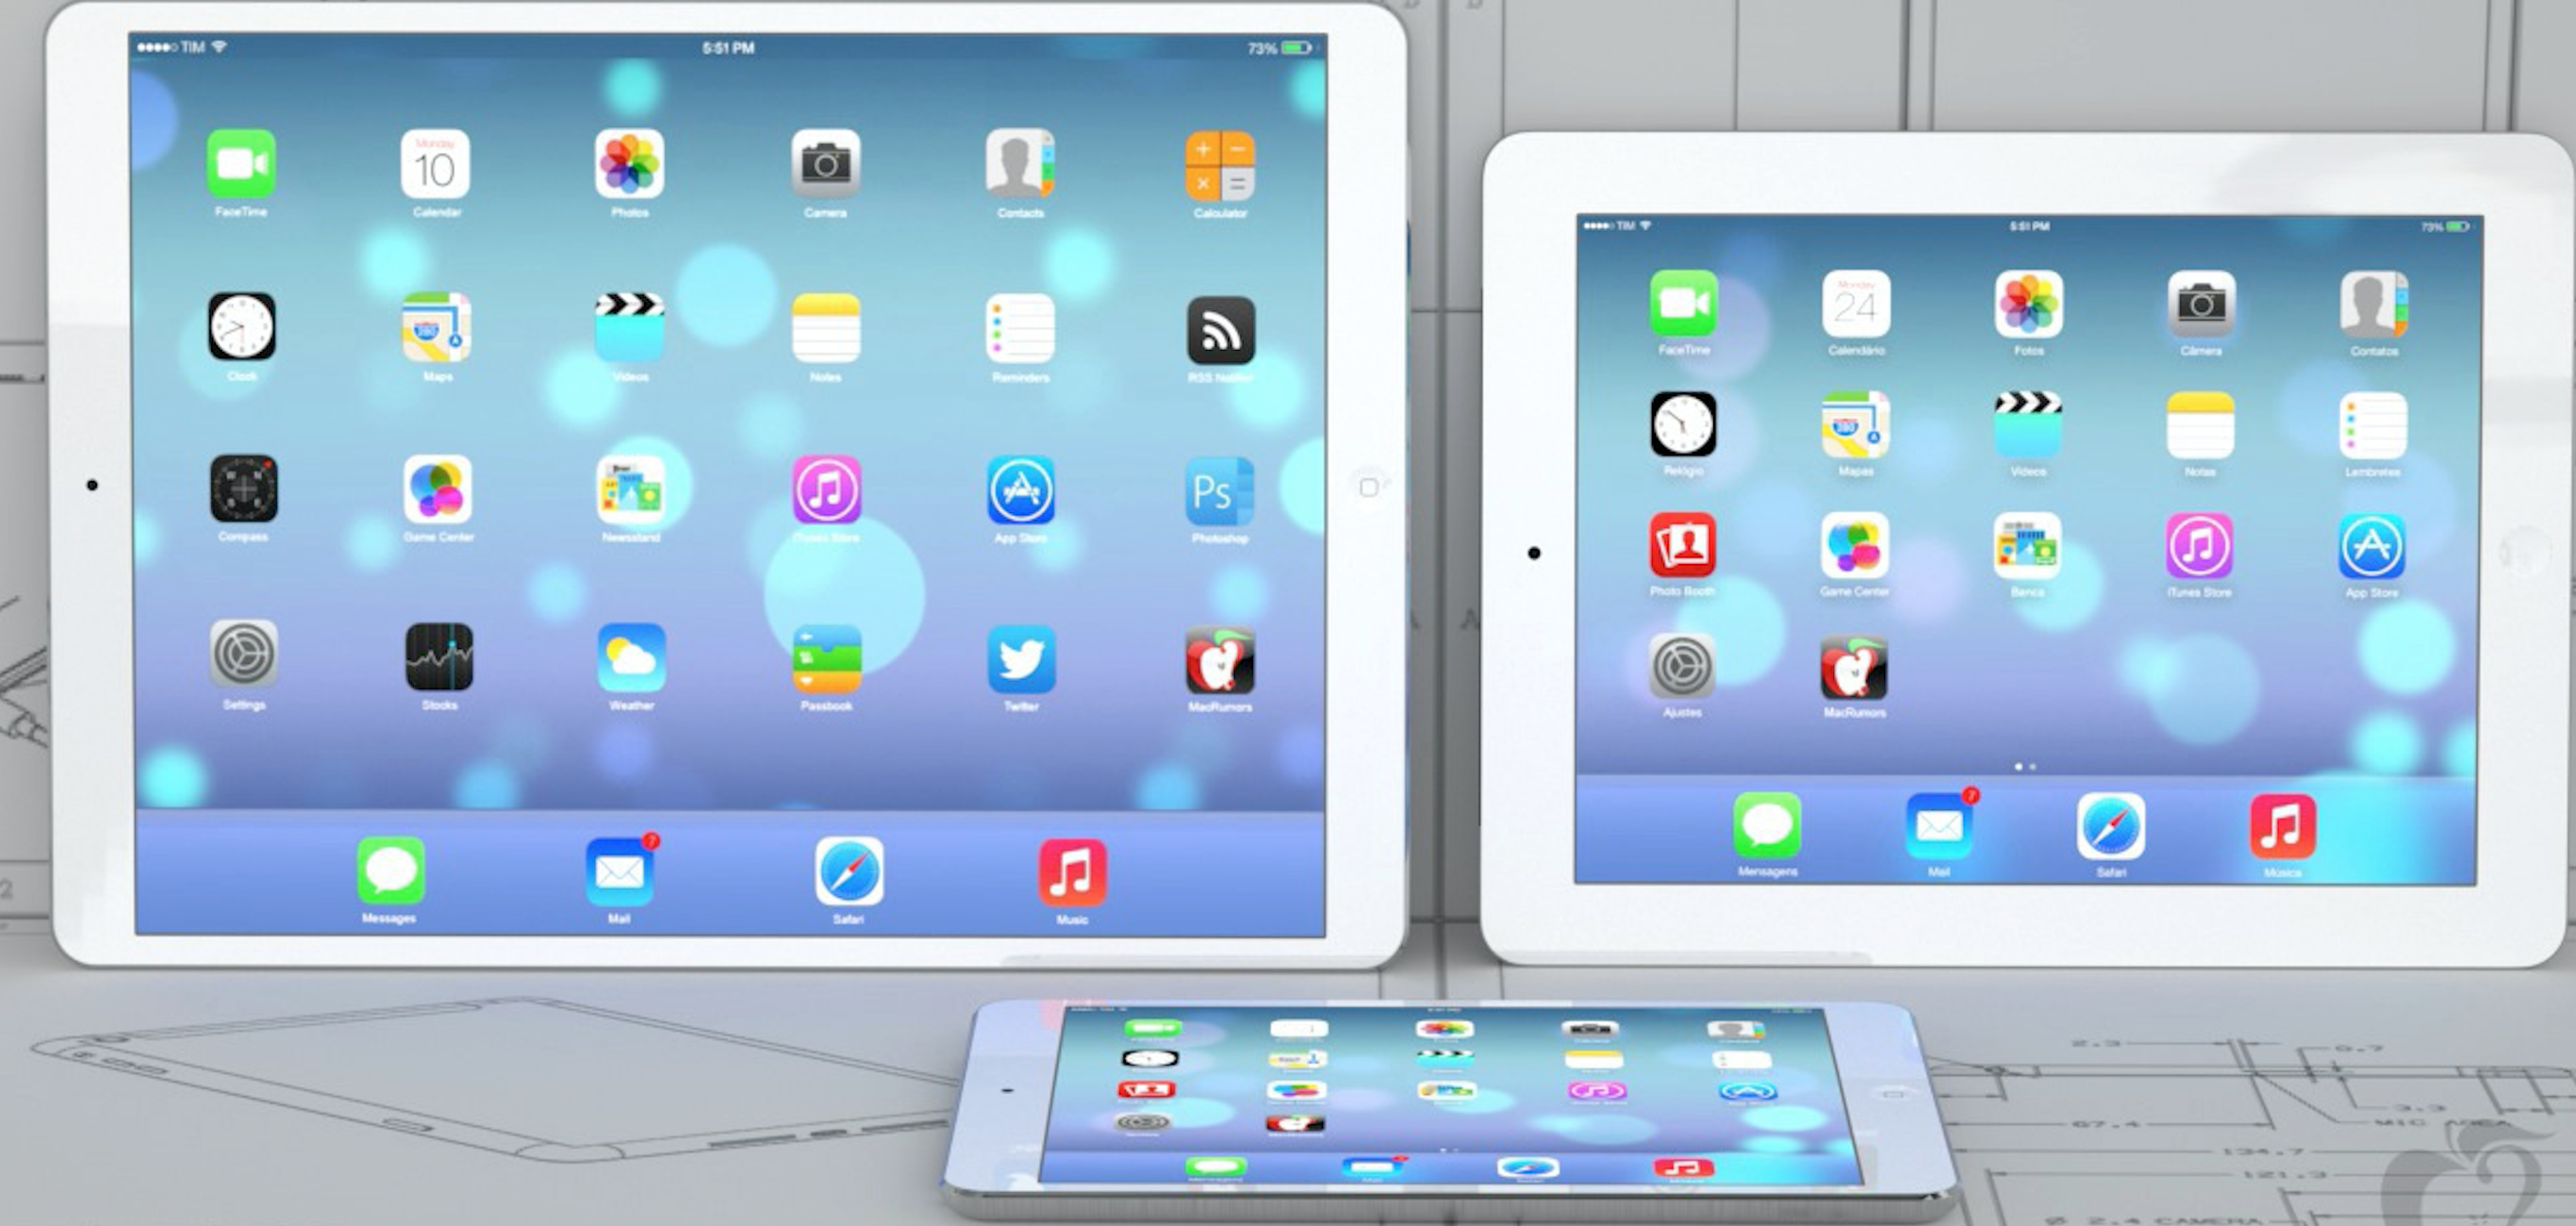 BREAKING: New iPad Pro Coming in Oct. With New Display